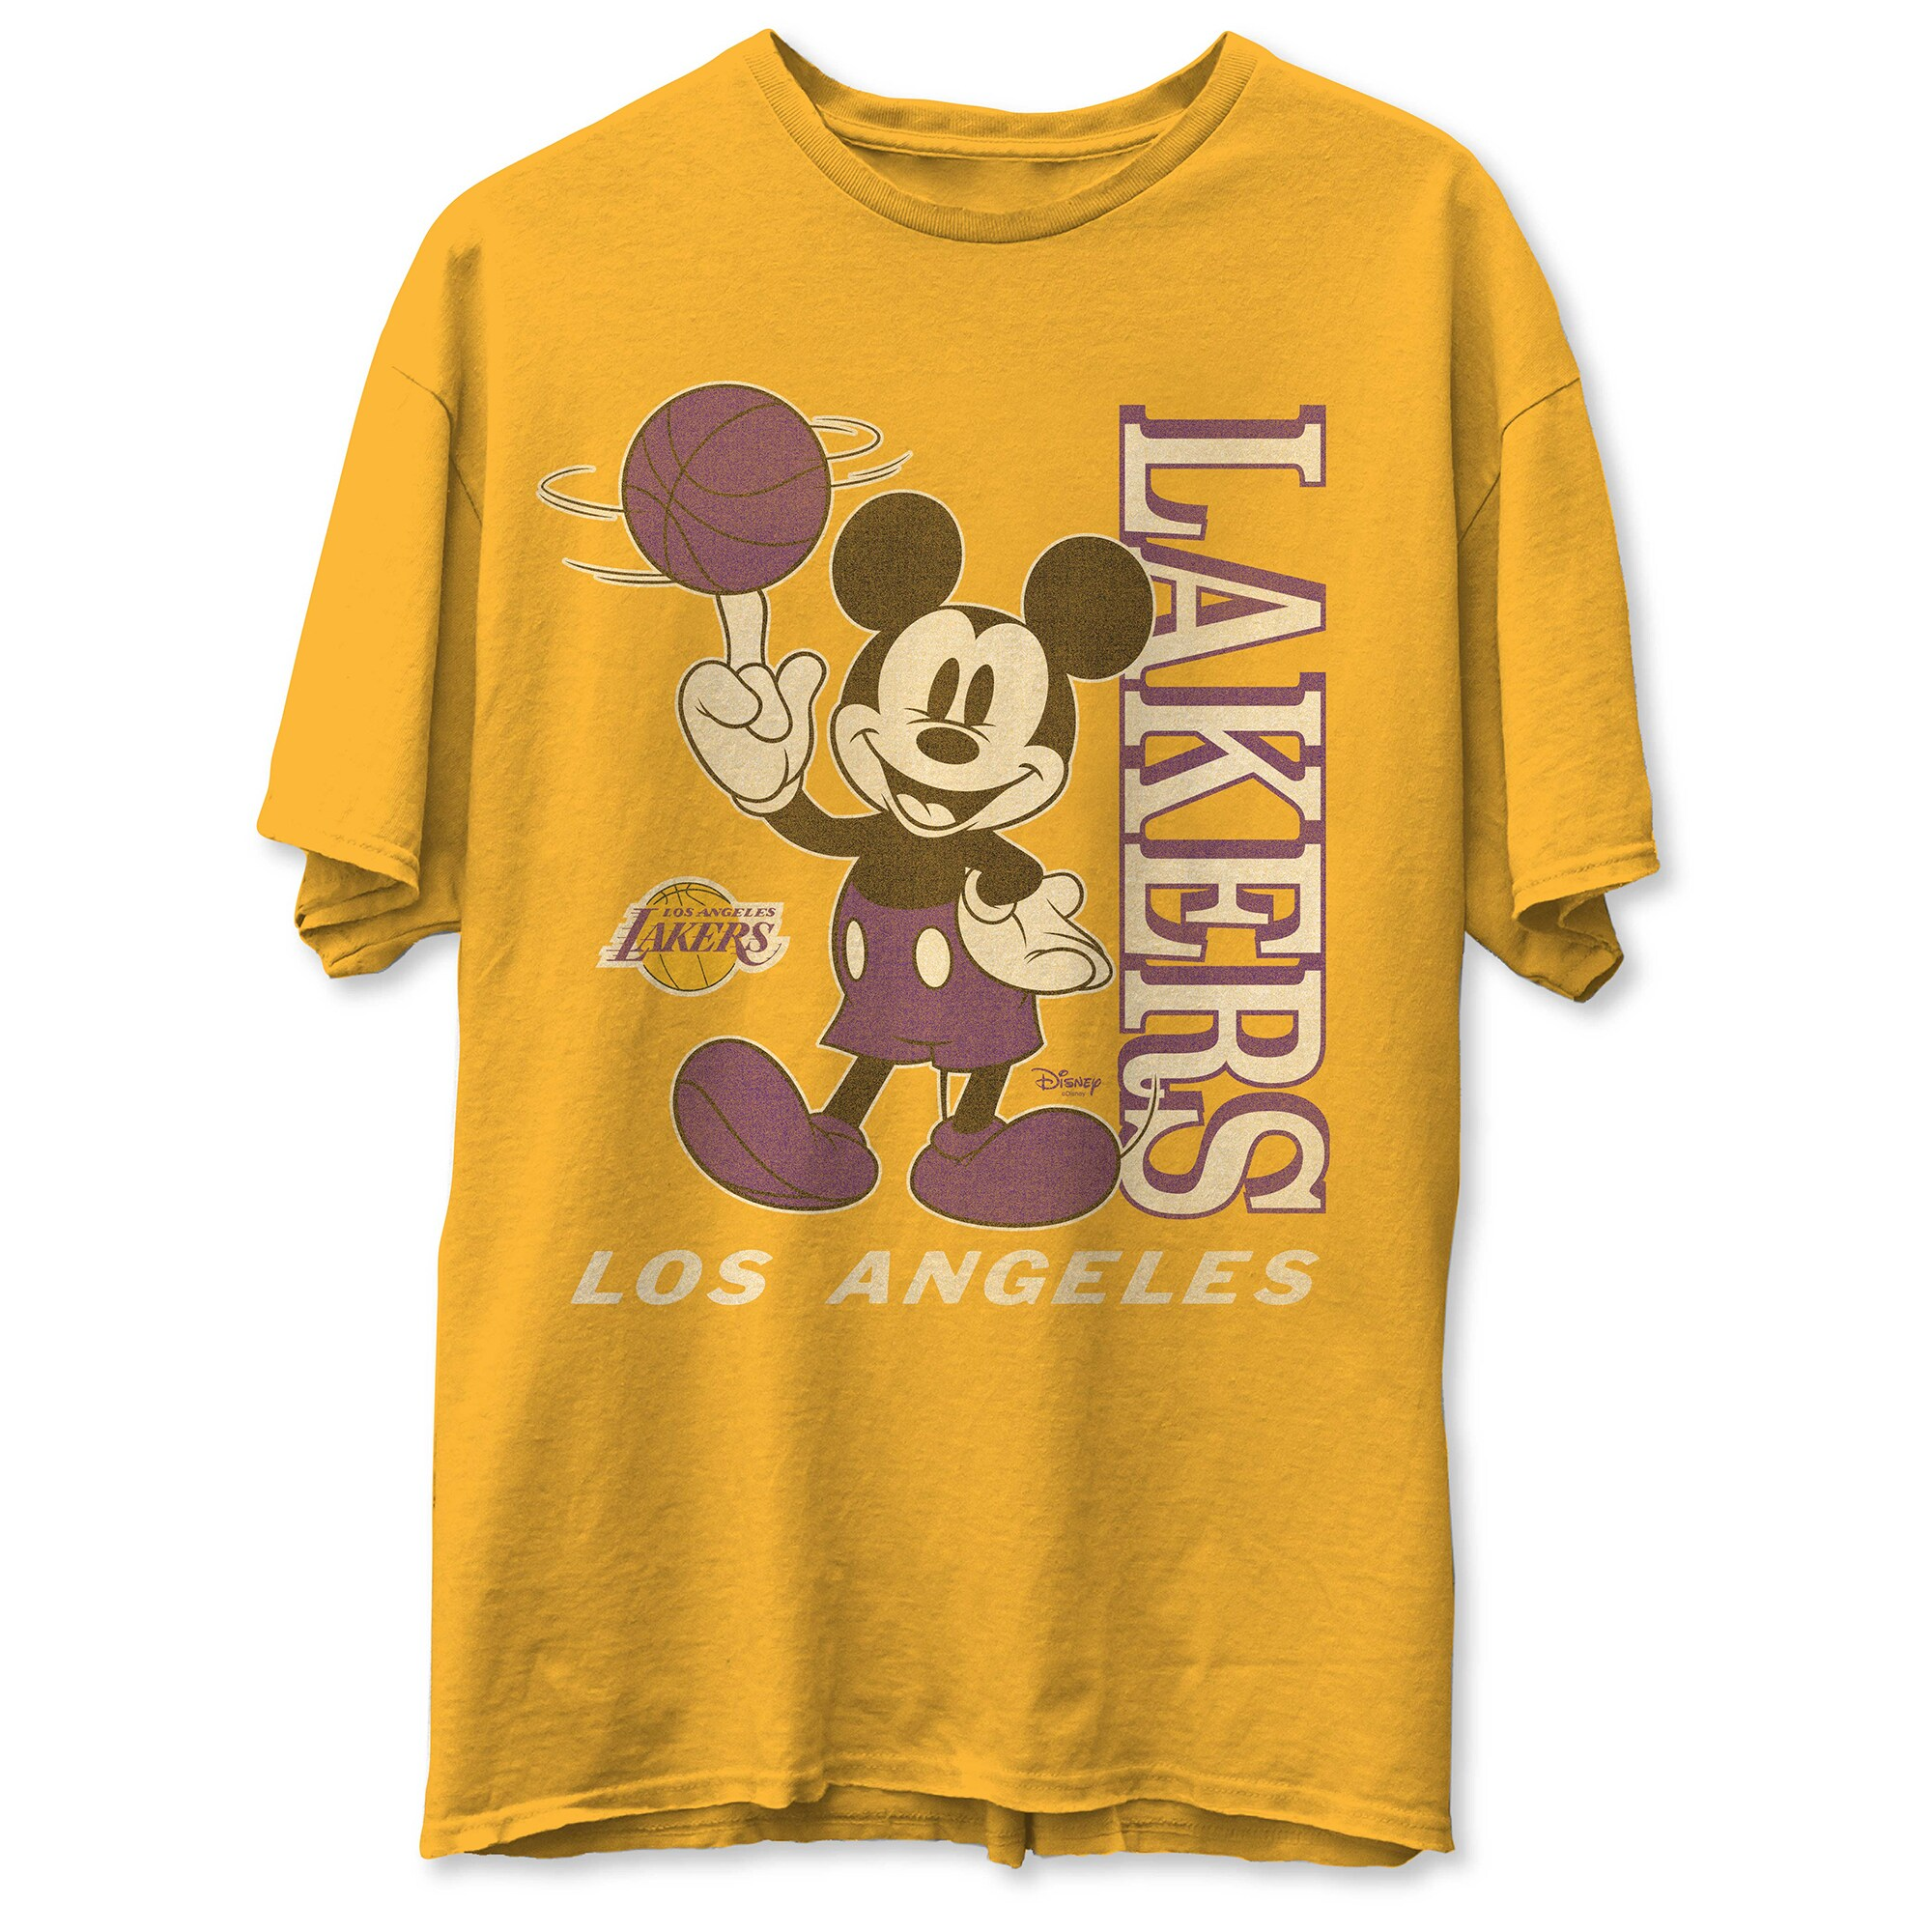 Los Angeles Lakers Junk Food Vintage Mickey Baller T-Shirt - Gold